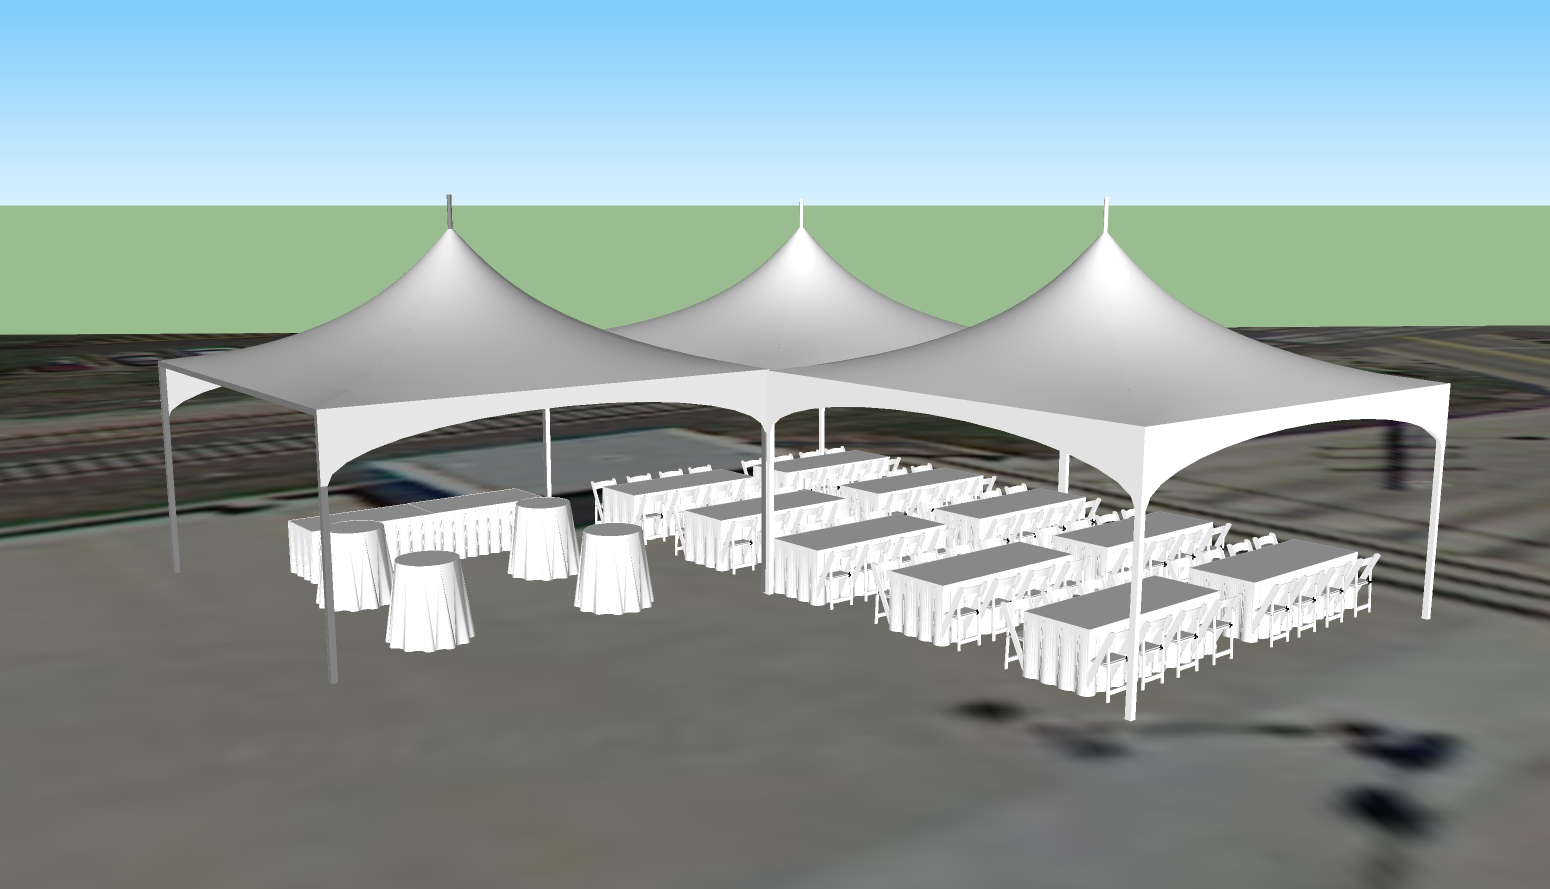 6.11.2015 Marriot rooftop 20x40 w 20x20 80 people s.png